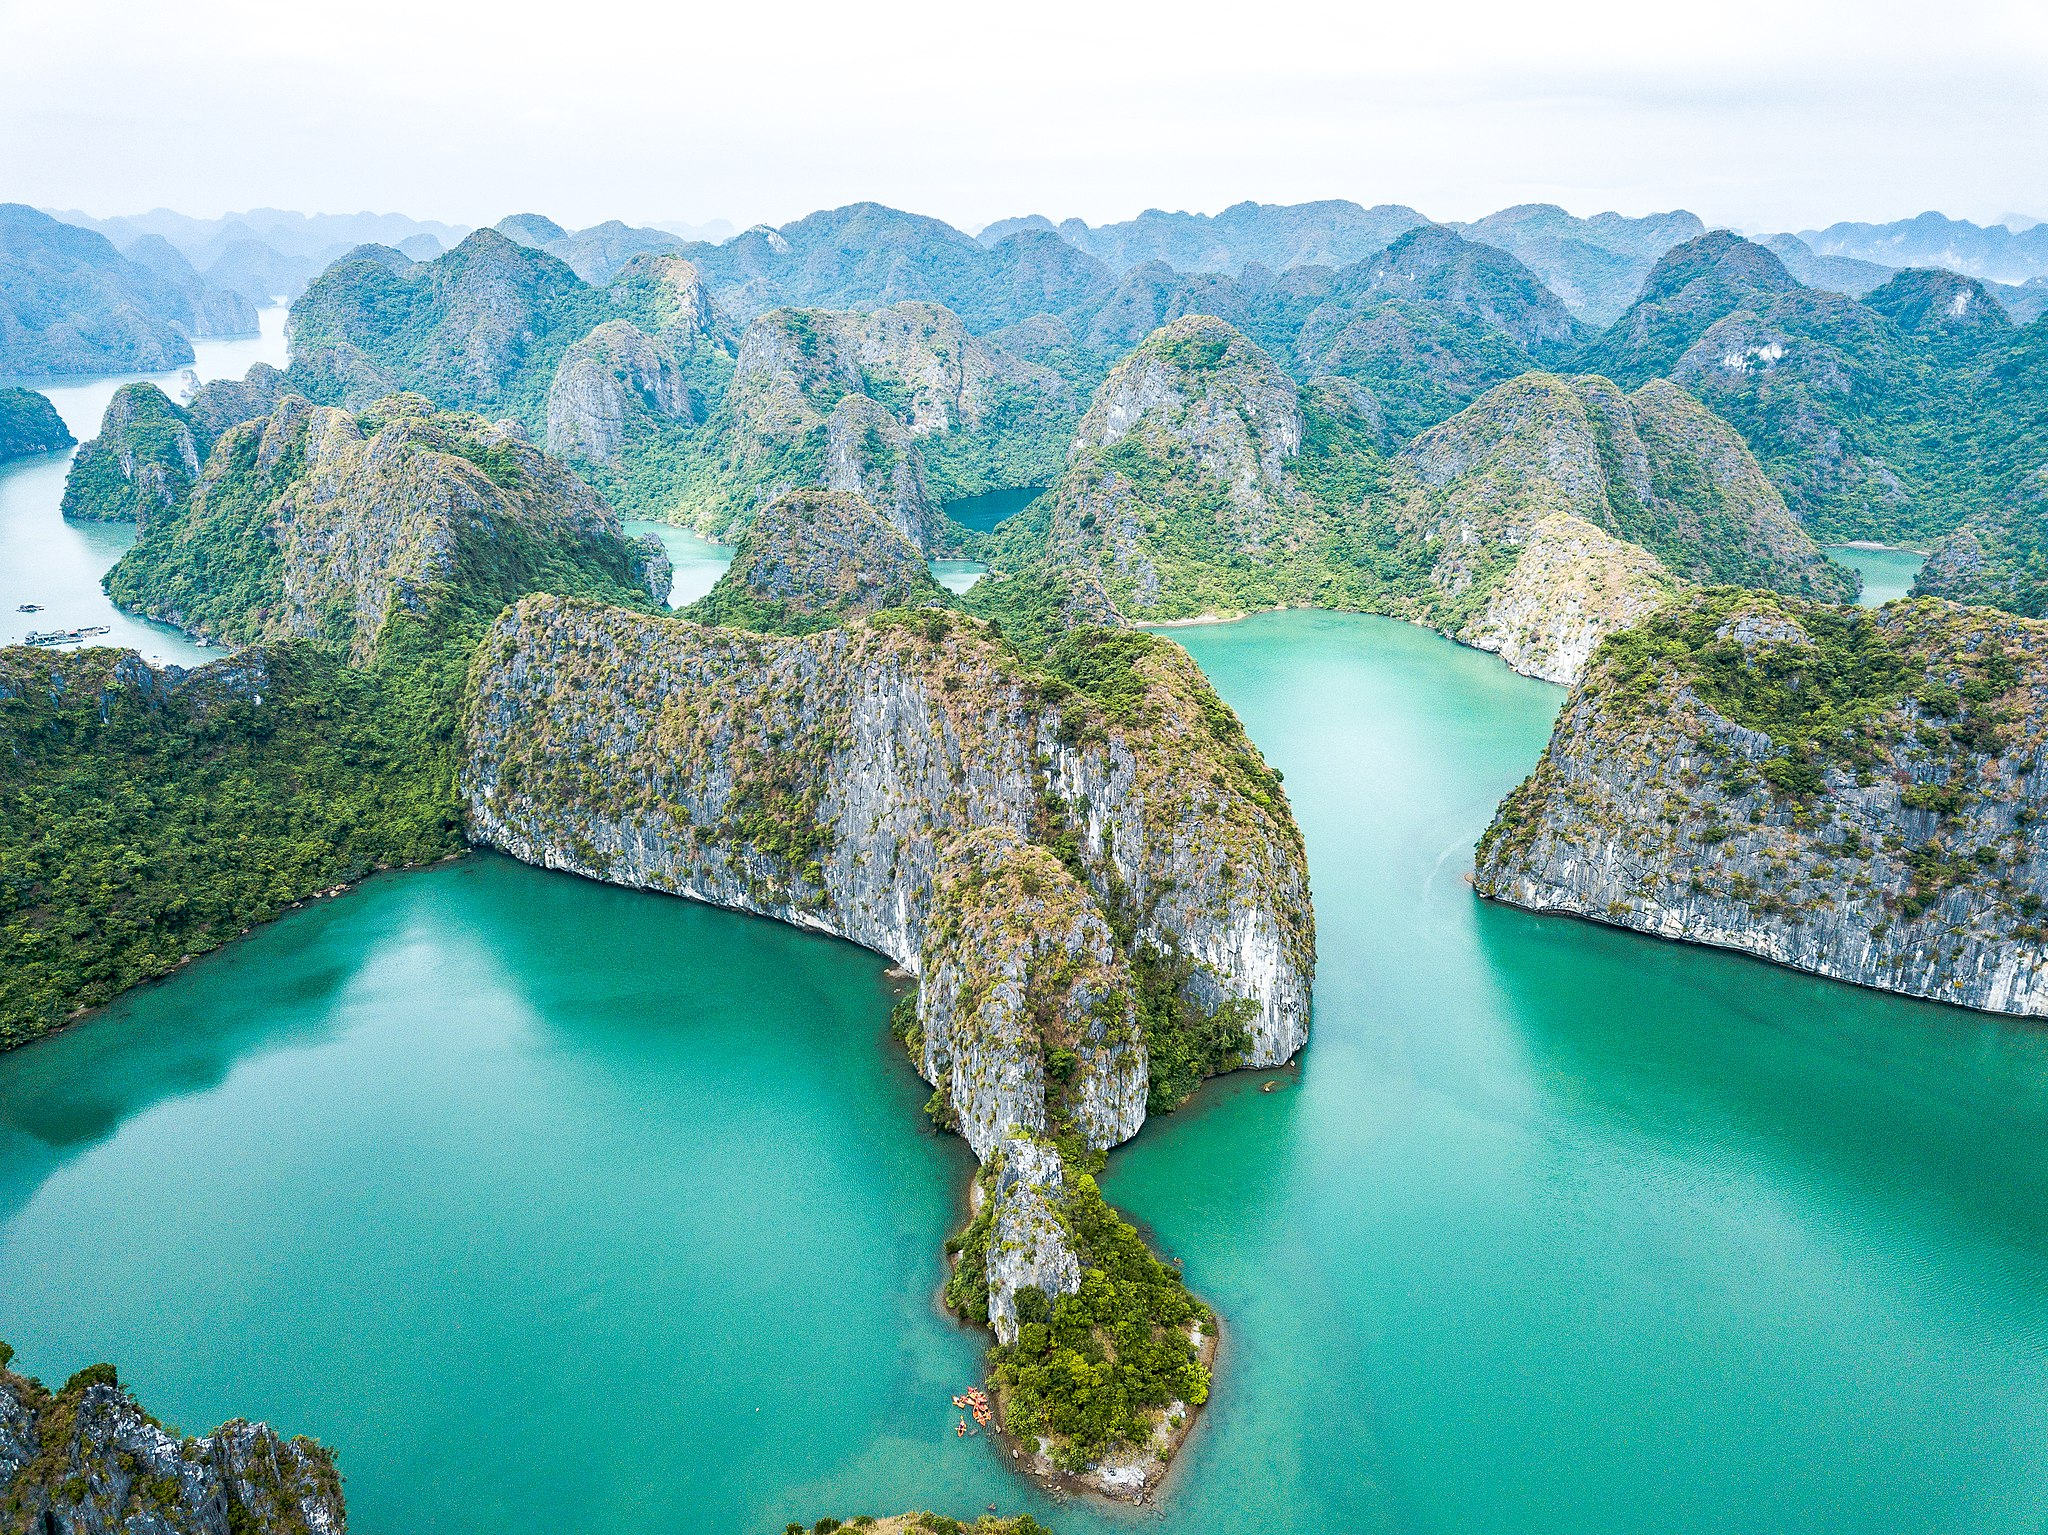 Aerial View of Baie d'halong